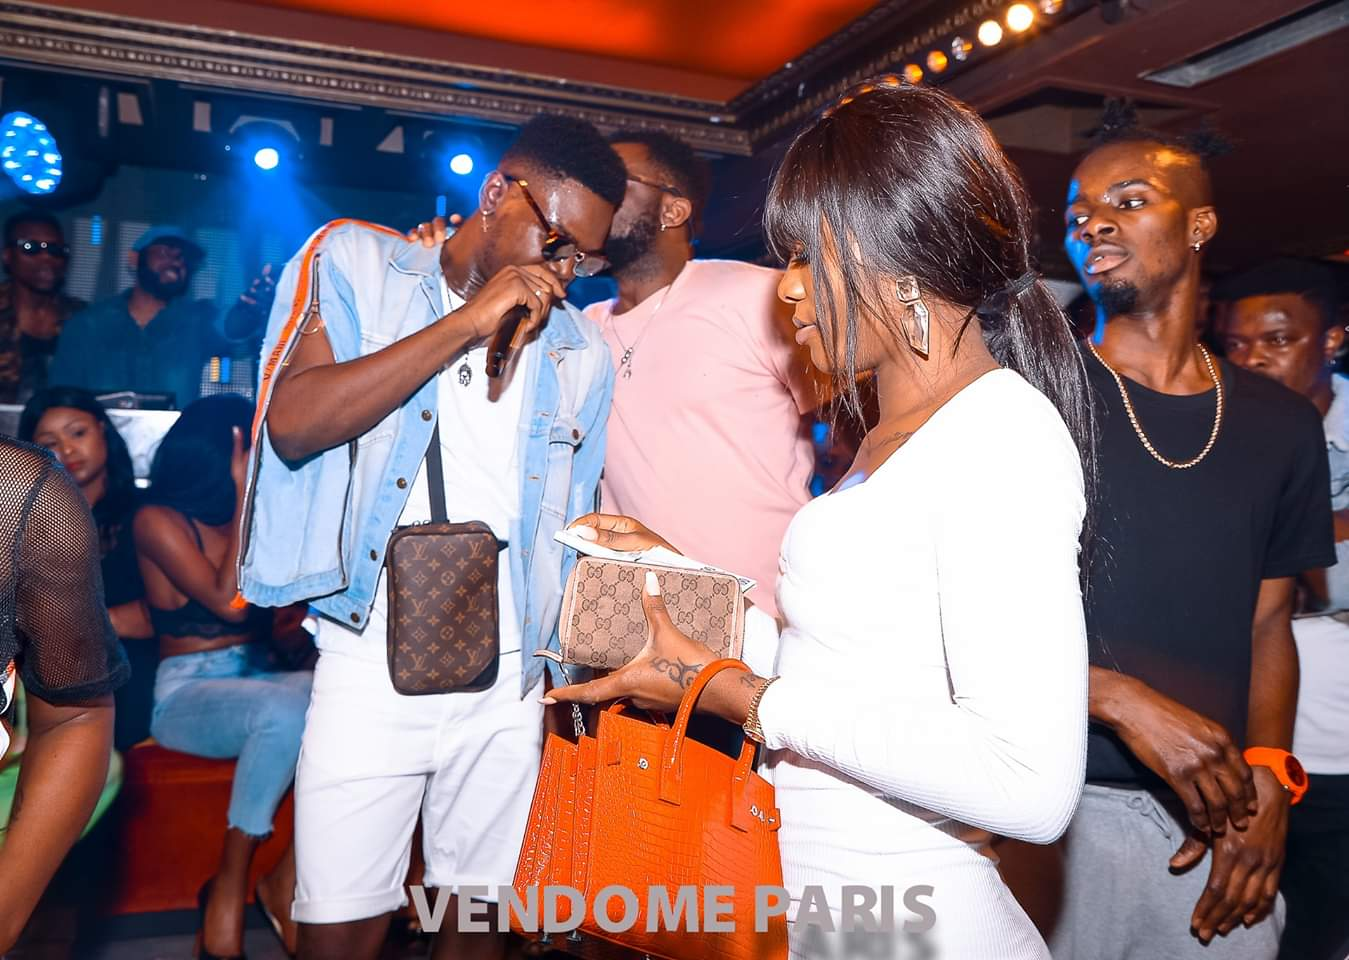 Coiffeur Vendome Ariel Sheney Au Vendôme Paris (images) - Abidjanshow.com